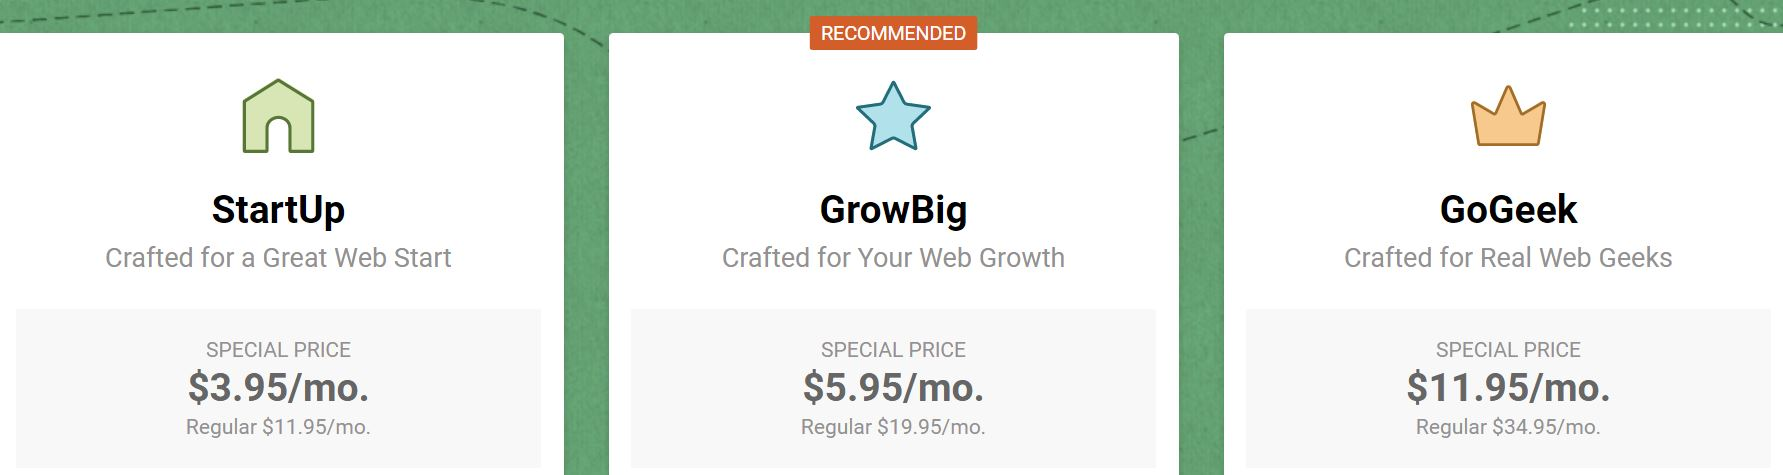 siteground Coupon discount code 2019